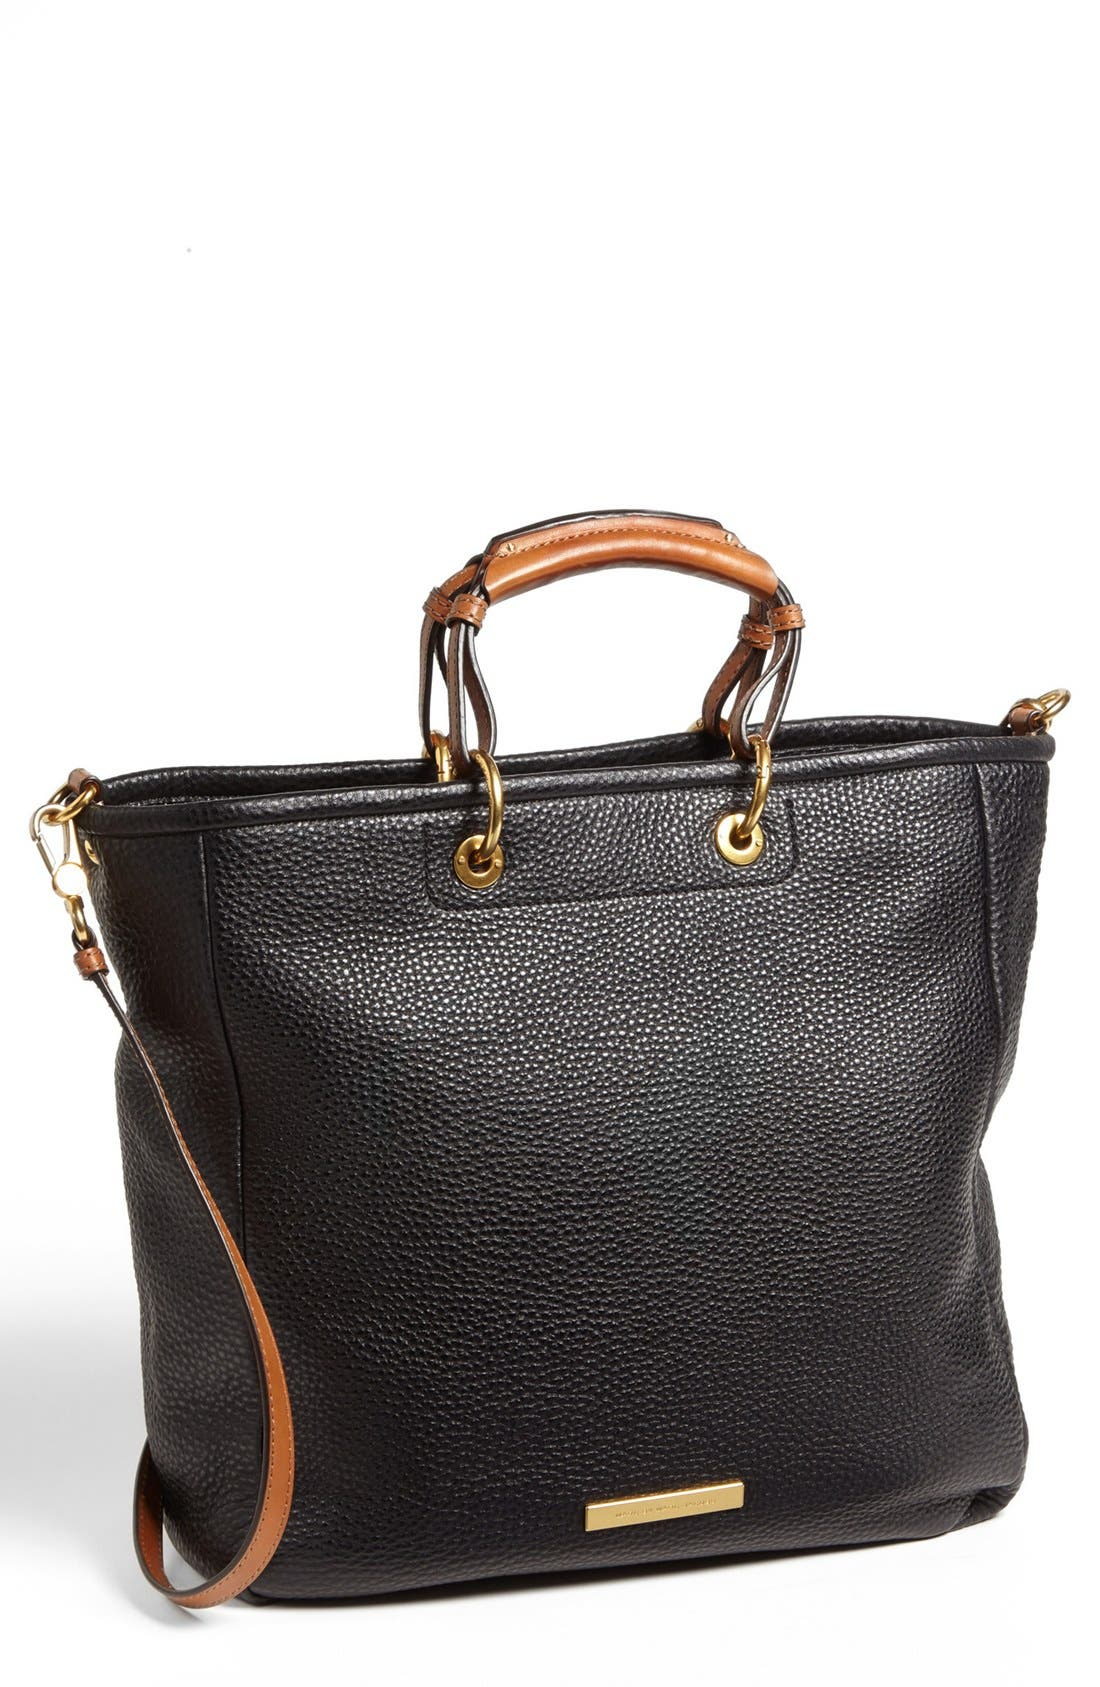 Alternate Image 1 Selected - MARC BY MARC JACOBS 'Softy Saddle' Leather Tote